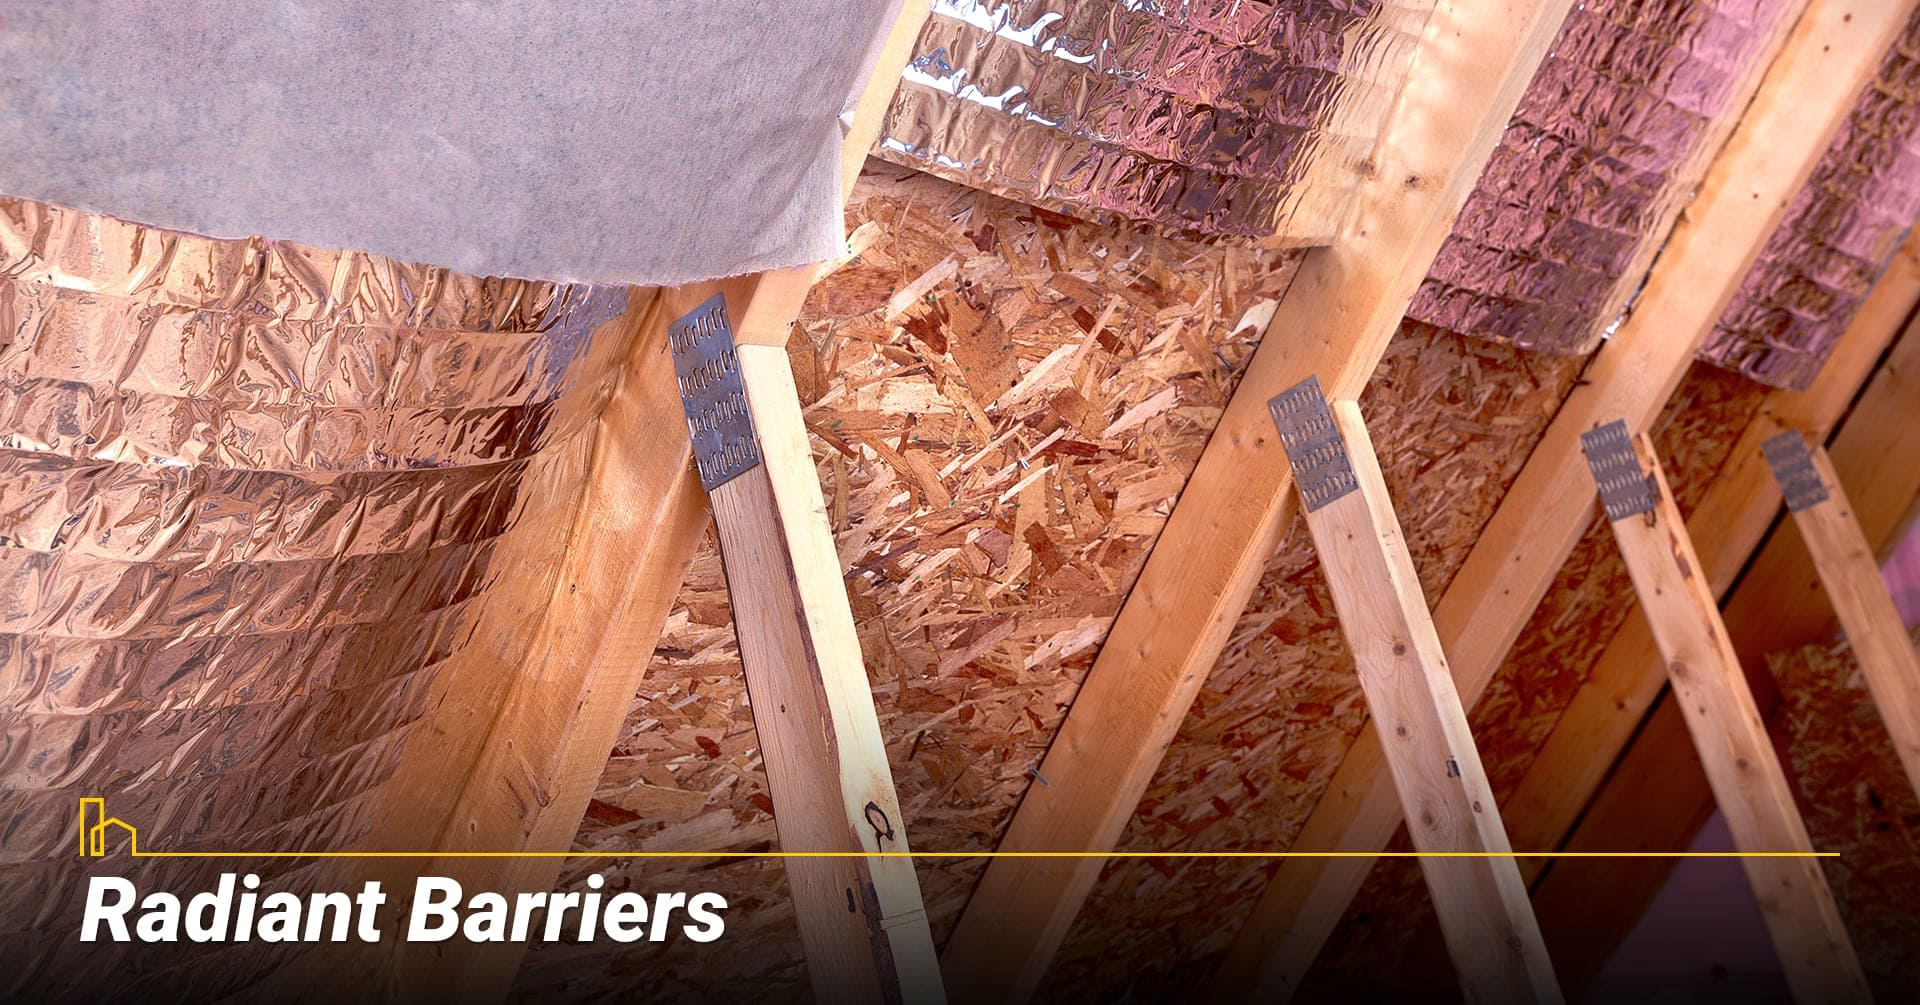 Radiant Barriers, use radiant barriers as insulation